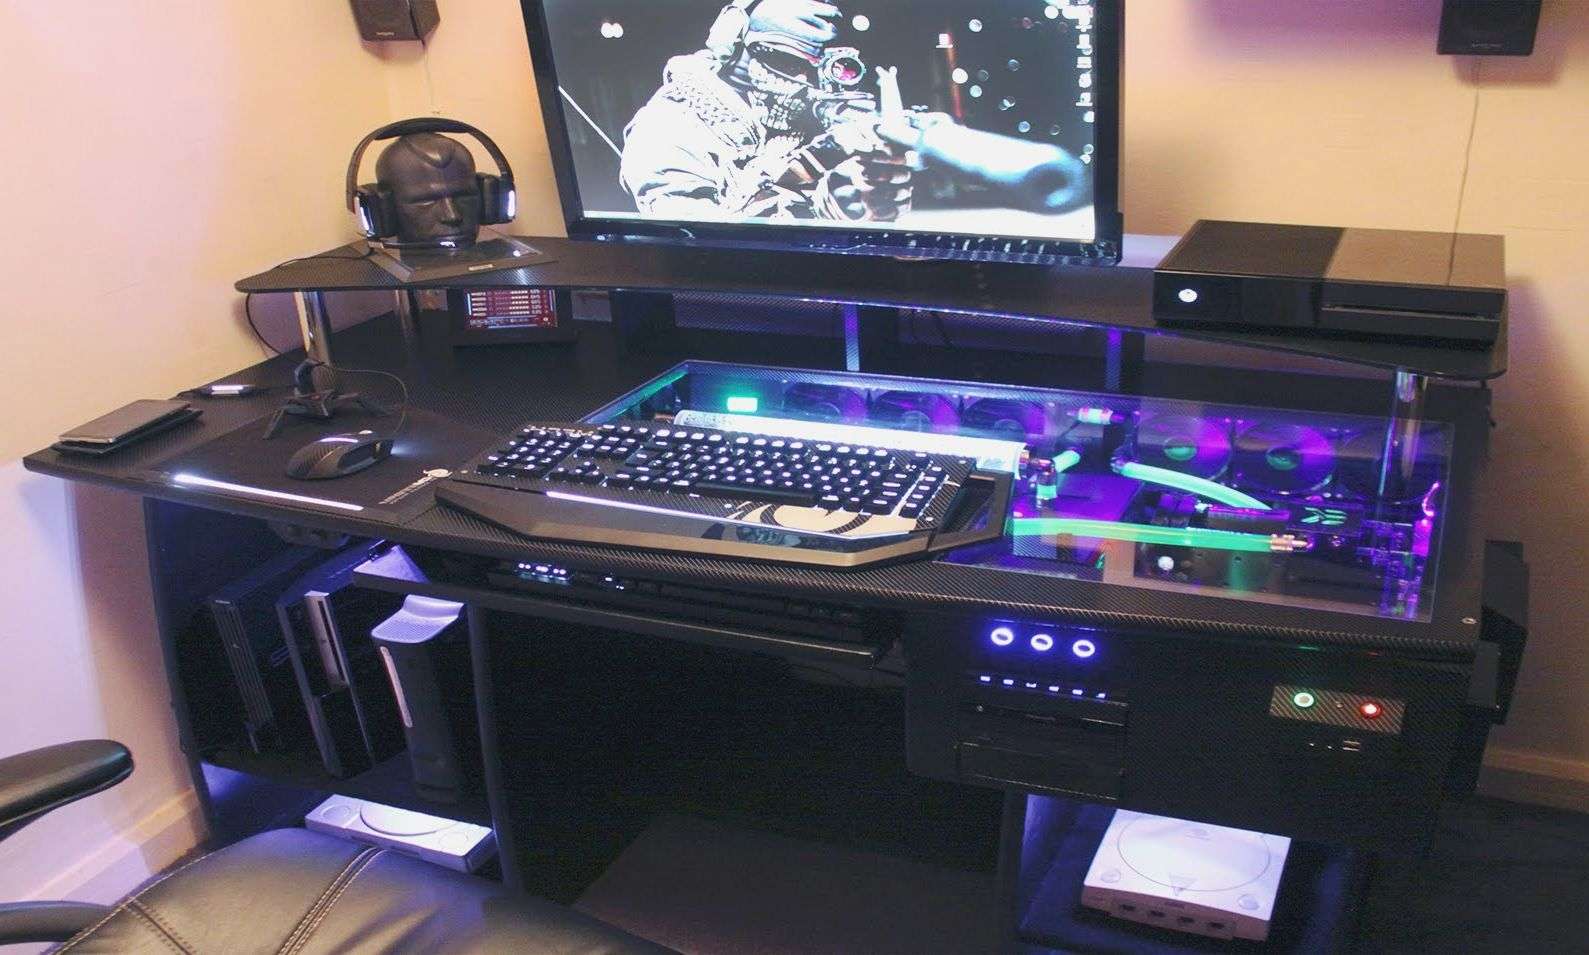 Desk Computer Case ULTIMATE Gaming PC Custom DESK Build